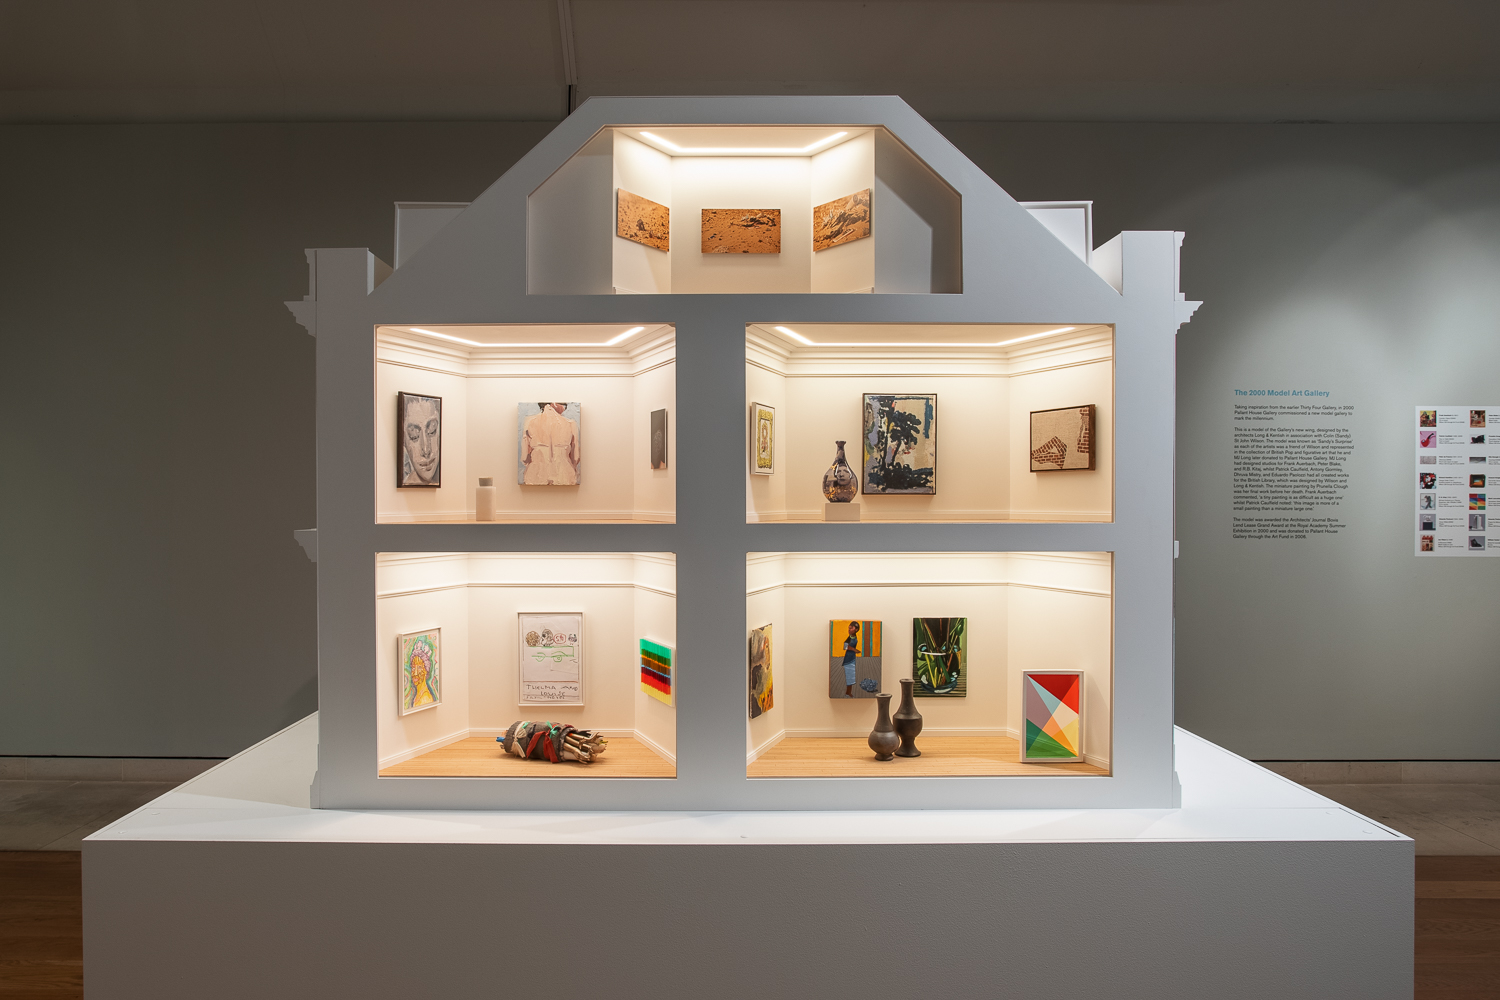 A large dollhouse sized art gallery, designed to imitate the exterior of an 18th century townhouse. The front shows a cross section of fiverooms (one in the attic, two on the first floor, and two on the ground floor), each filled with works of modern art.